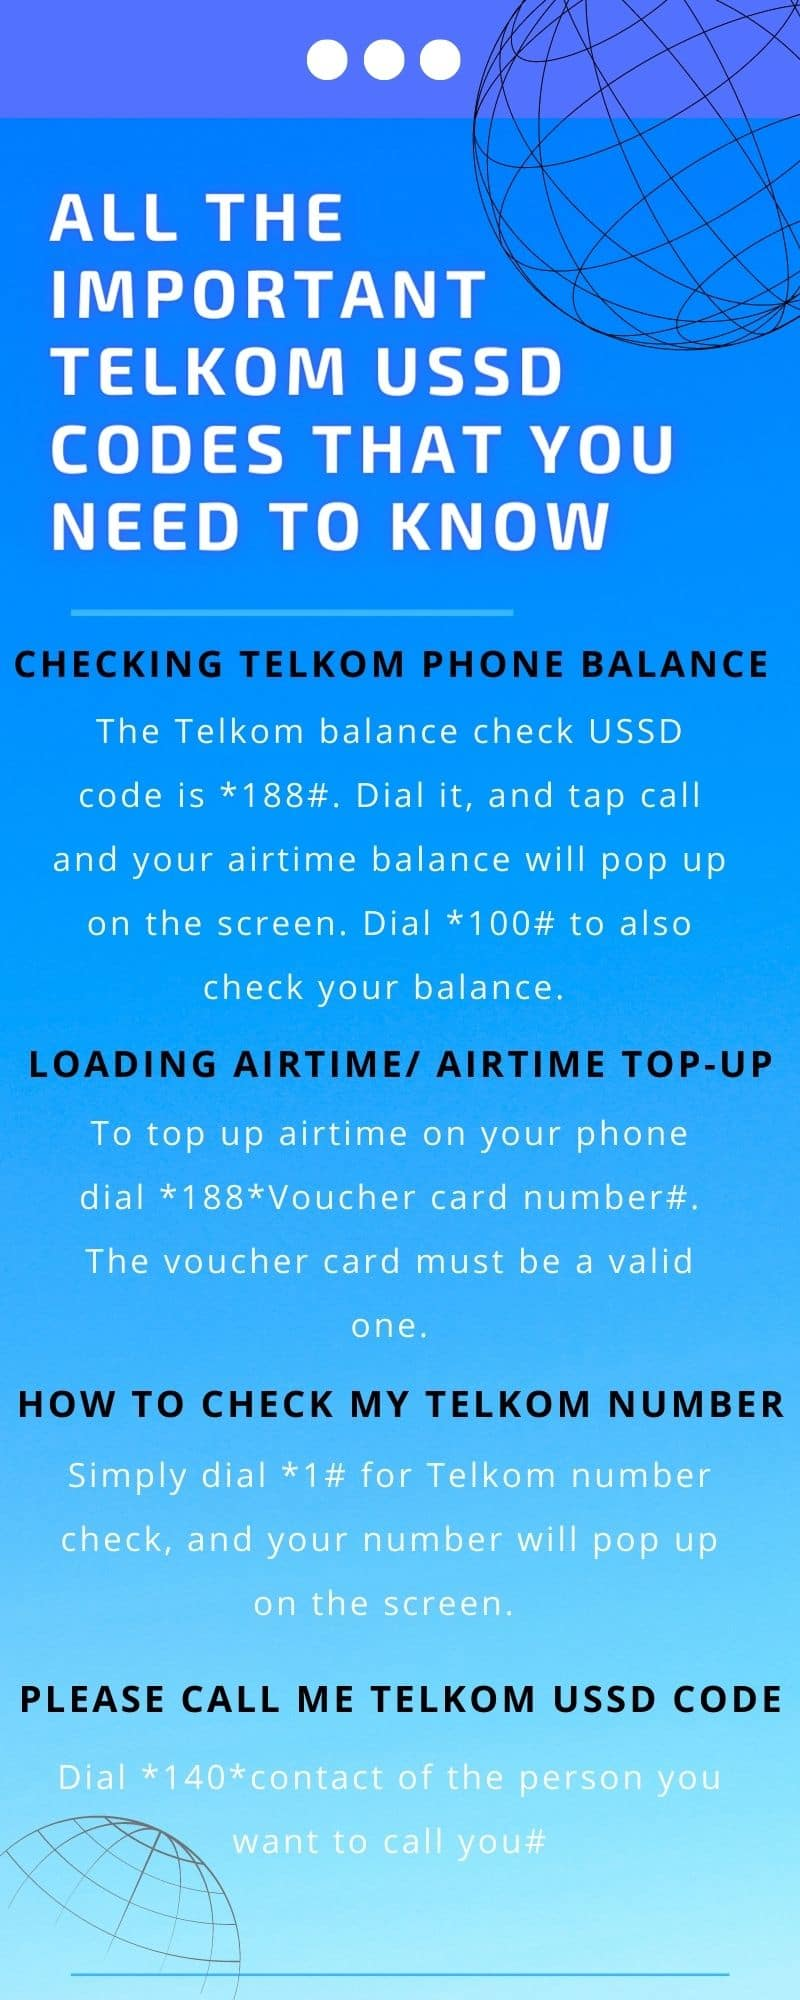 Telkom USSD codes that you need to know